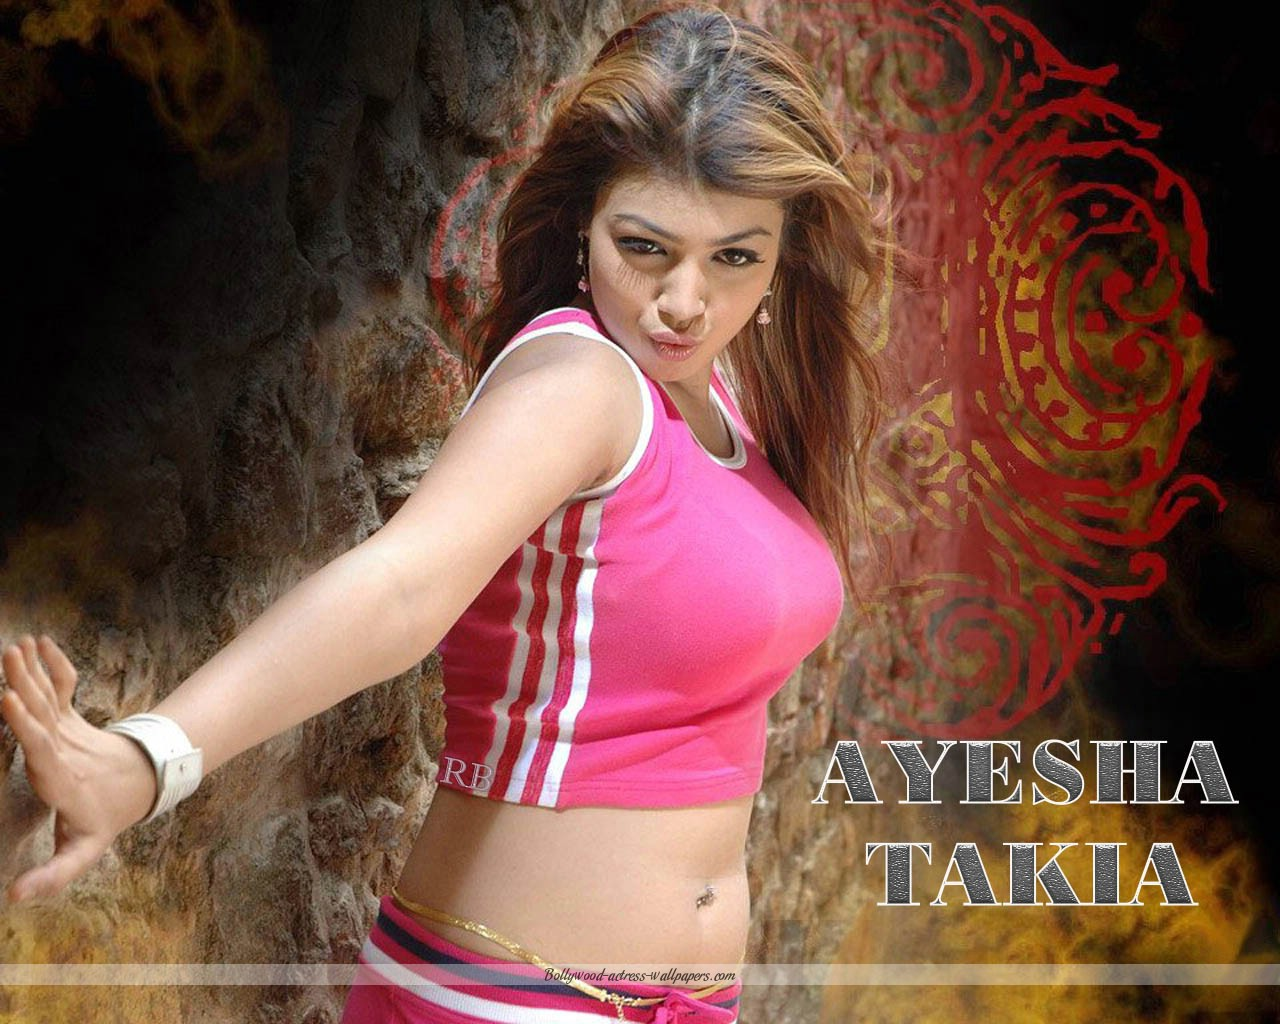 Ayesha bikini in takia captures